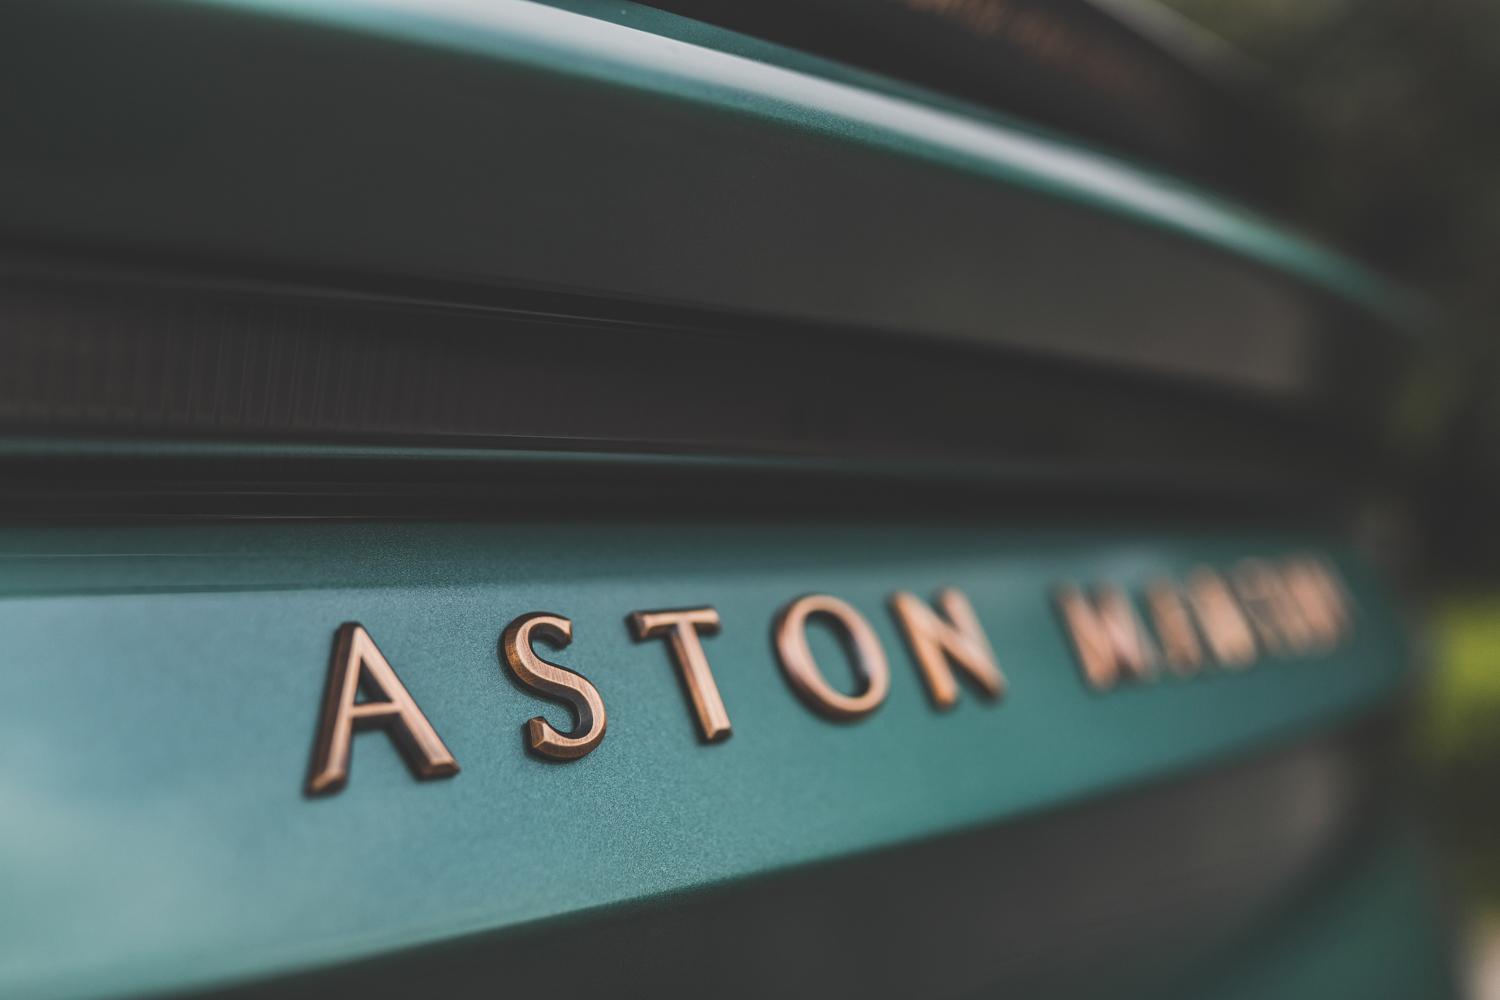 Aston Martin DBS 59 rear badge detail